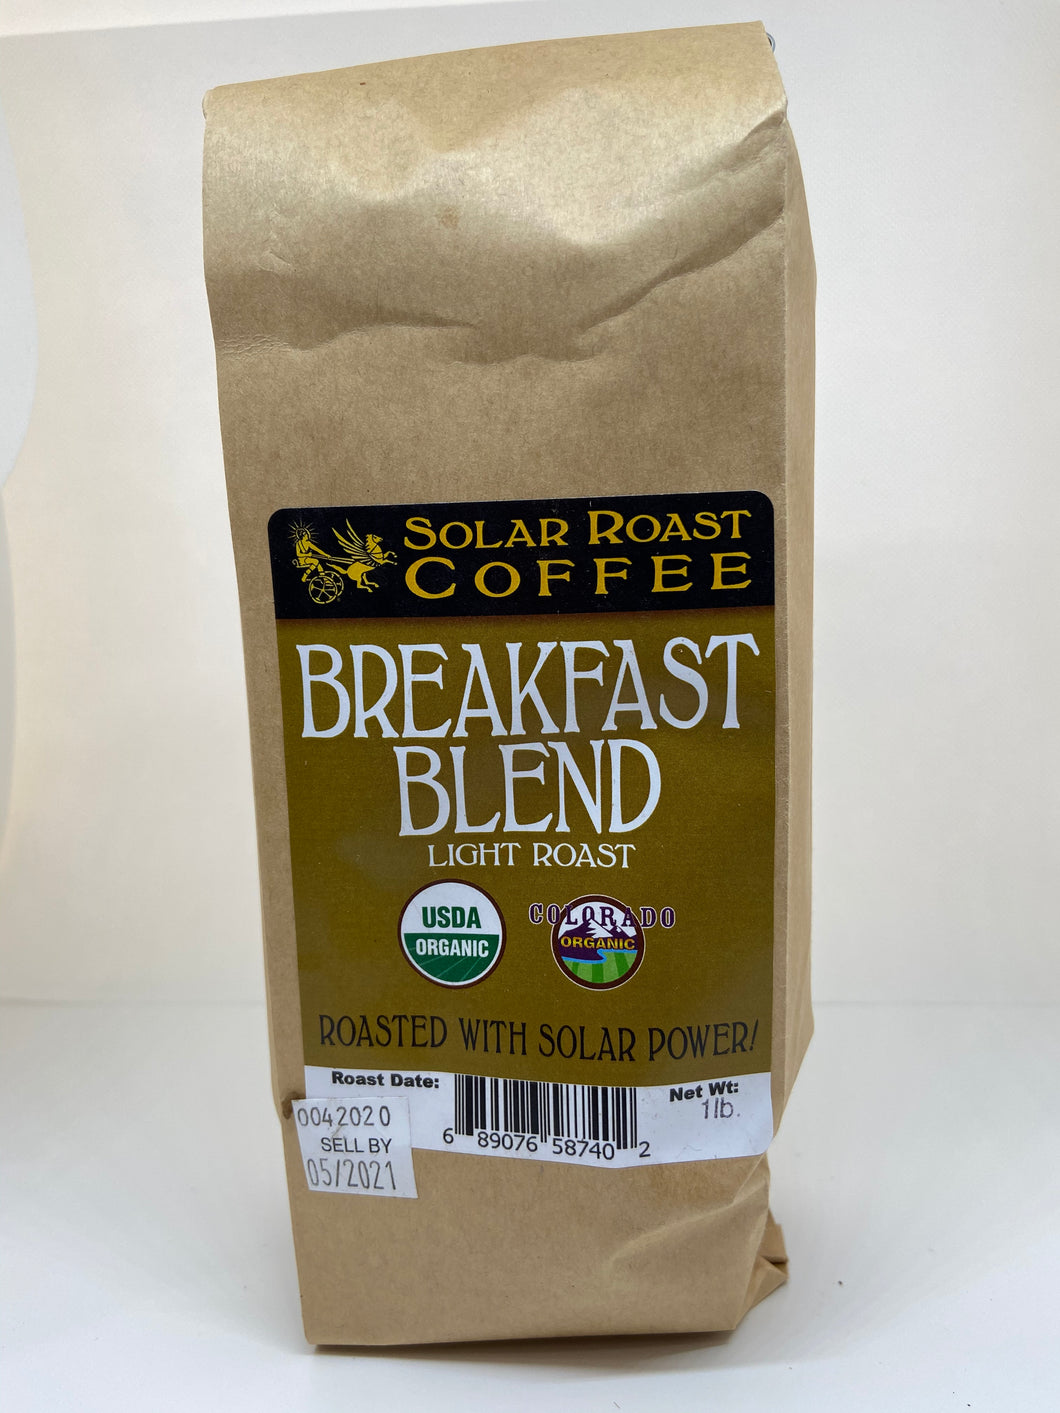 Solar Roast Organic Breakfast Blend - Light Roast